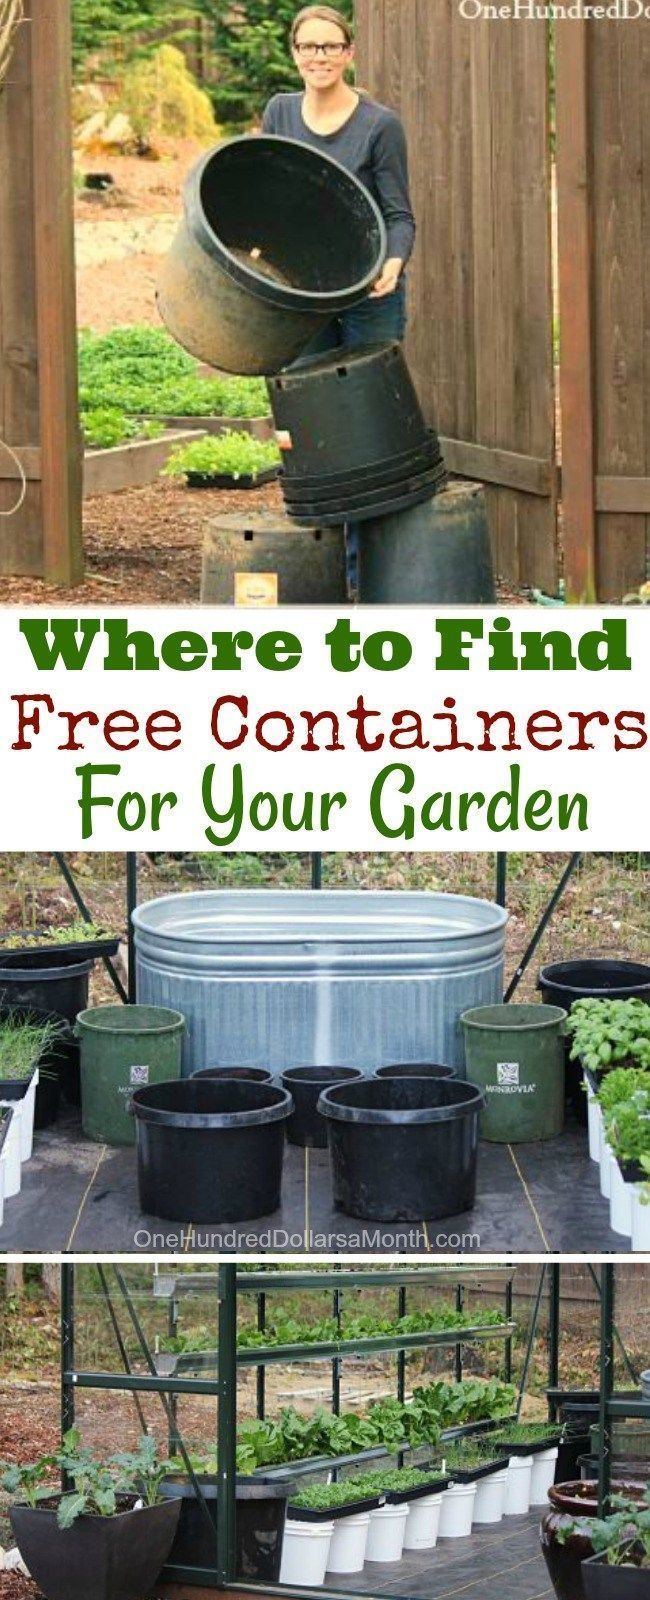 Gardening Hacks Where to Find Free Containers free Garden Supplies Gardening 101 Recycled Garden Containers